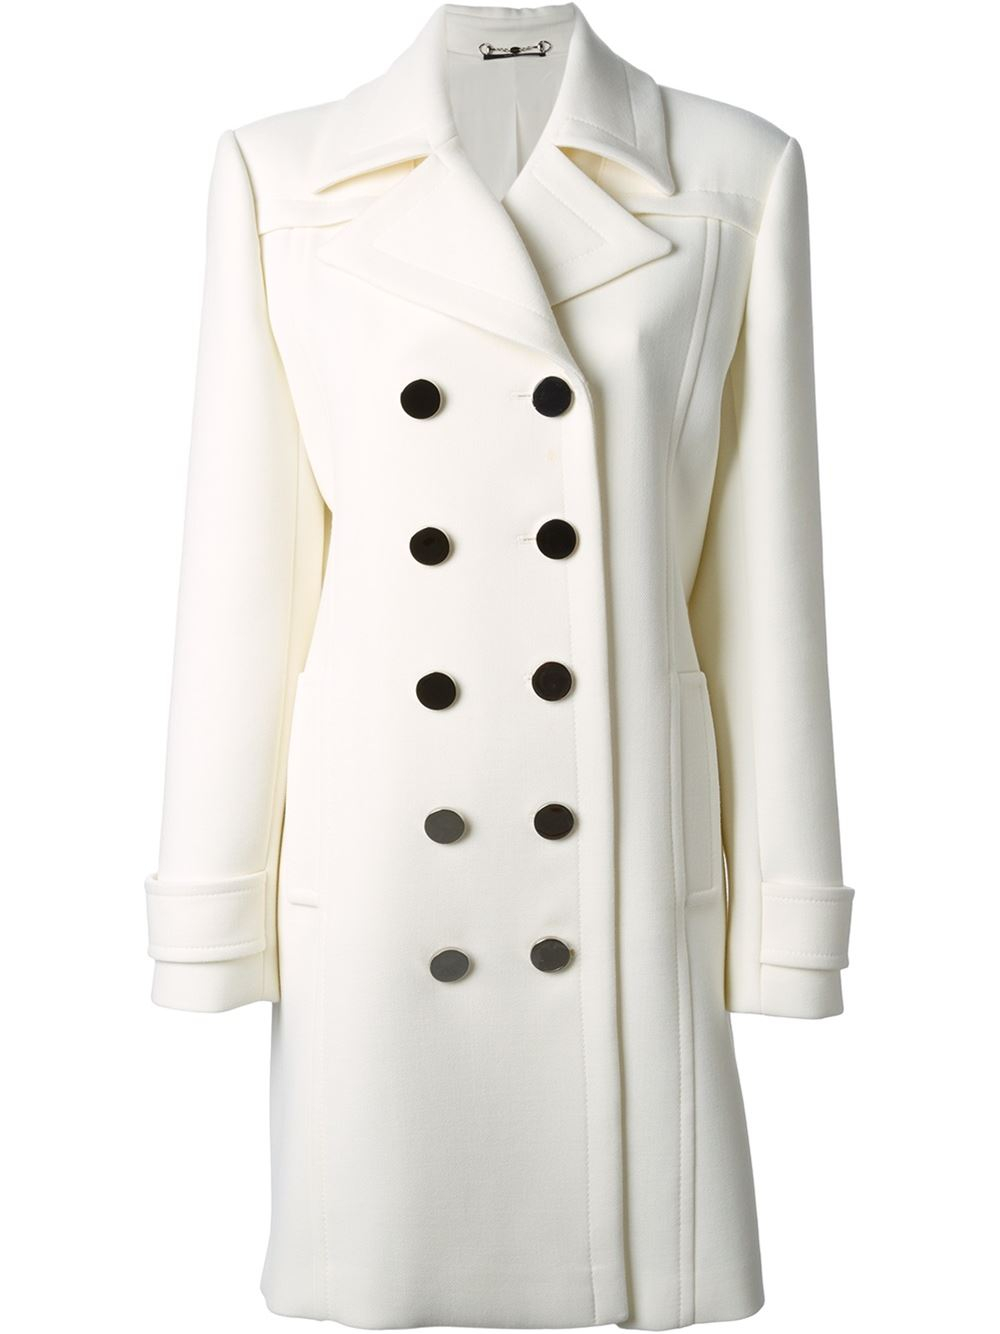 845592f84 Gucci Double Breasted Coat in White - Lyst